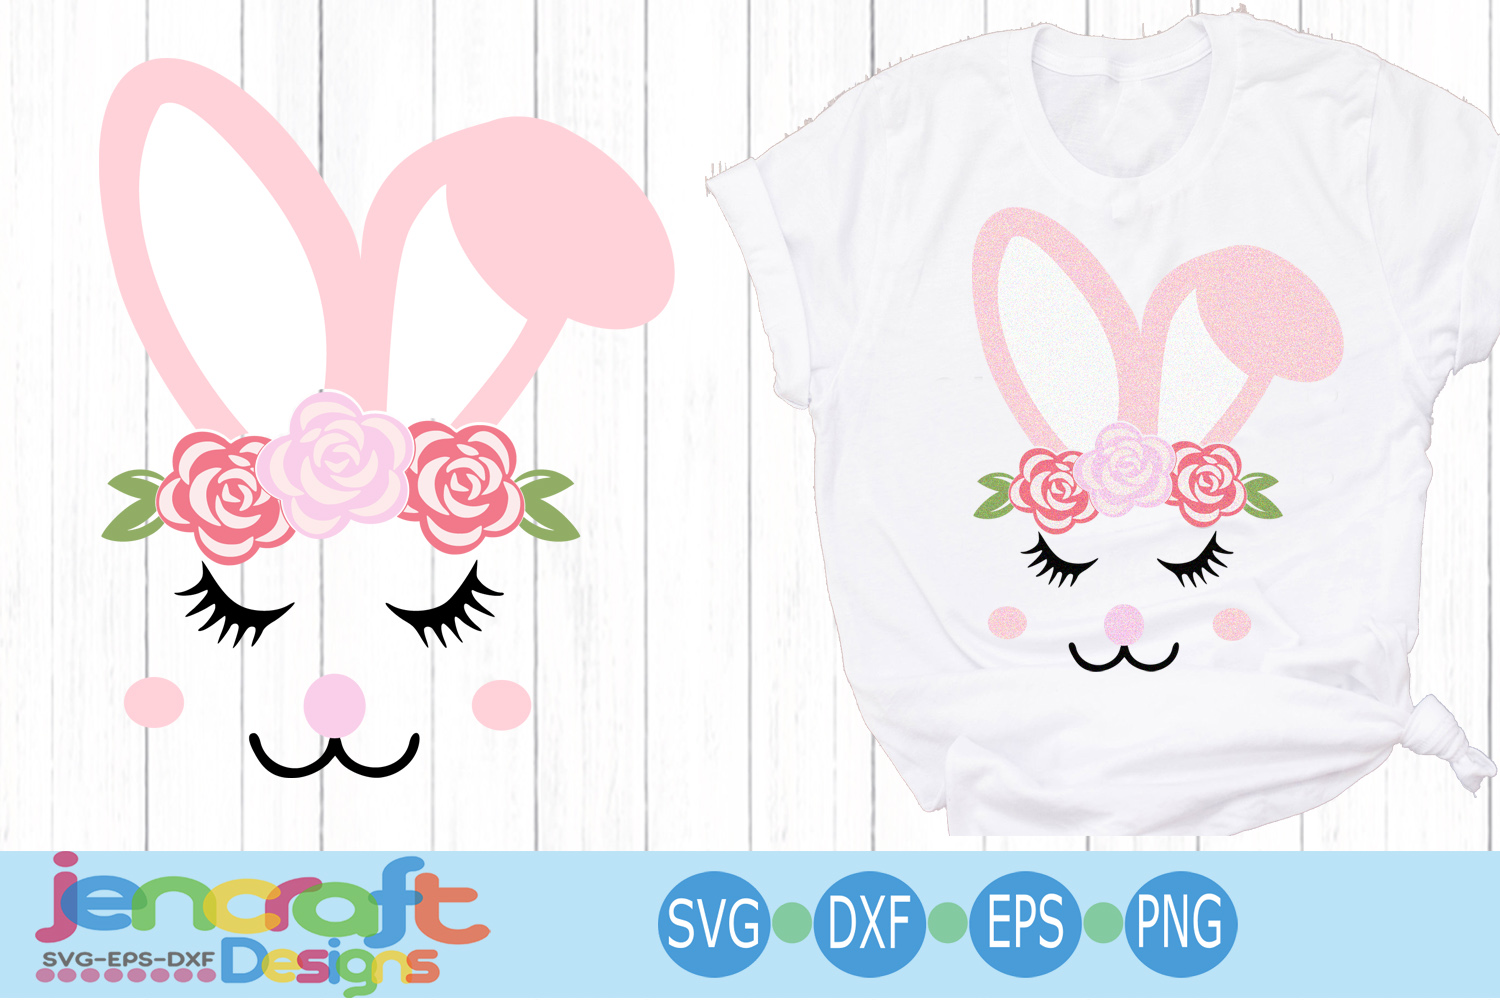 Floral Girl Easter Bunny Face Eyelashes svg, eps, dxf example image 1